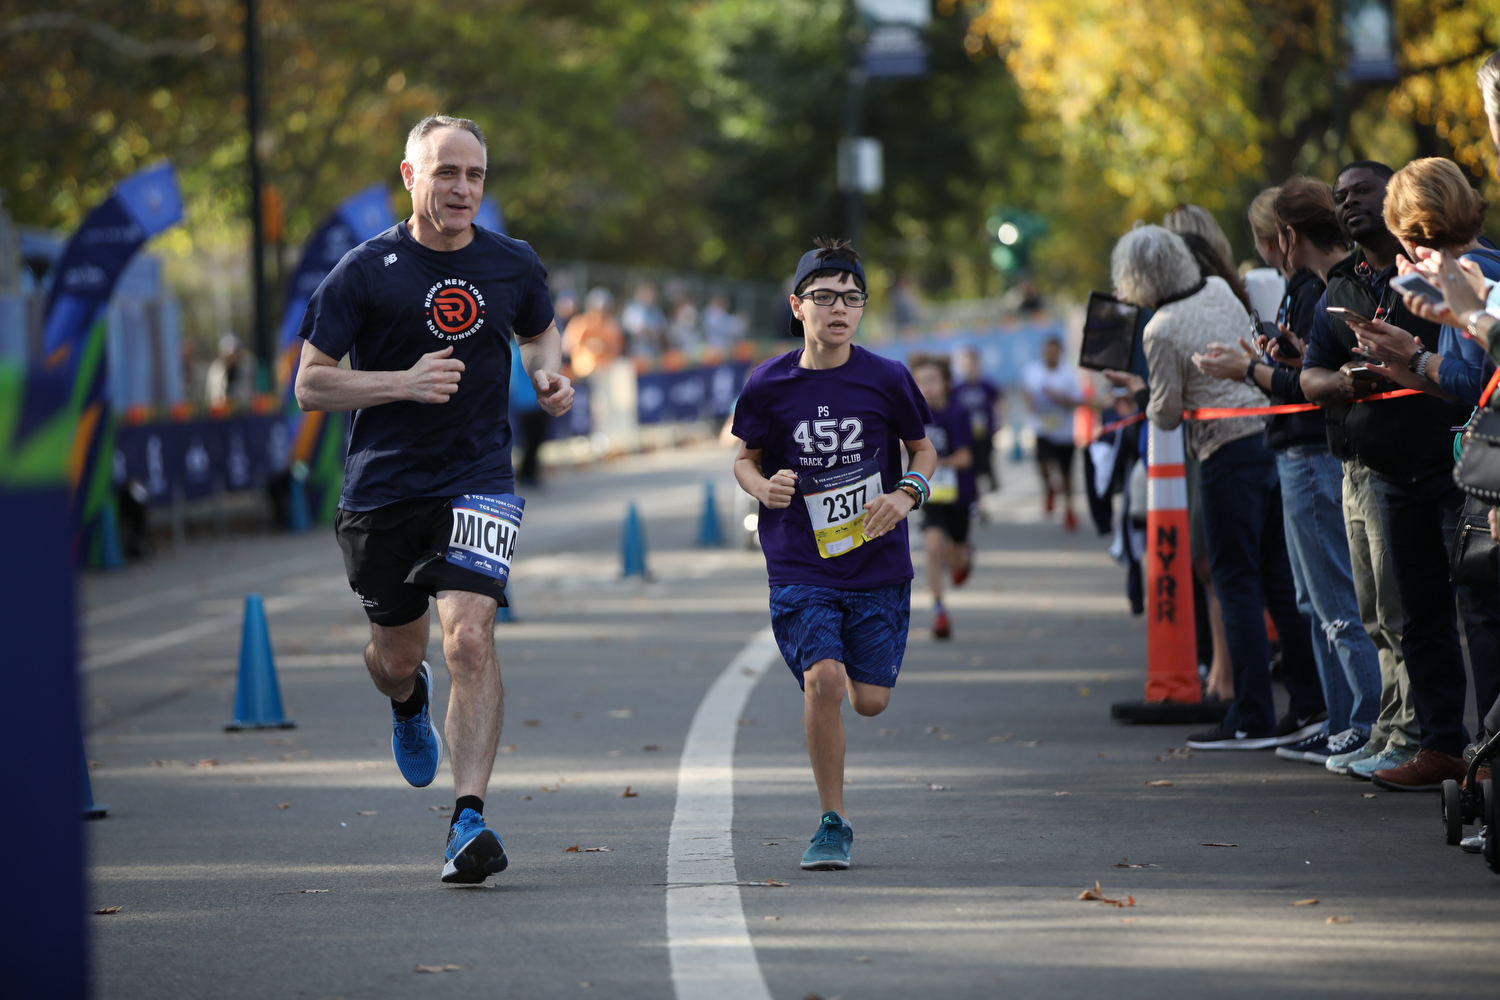 Photo by Da Ping Luo for NYRR